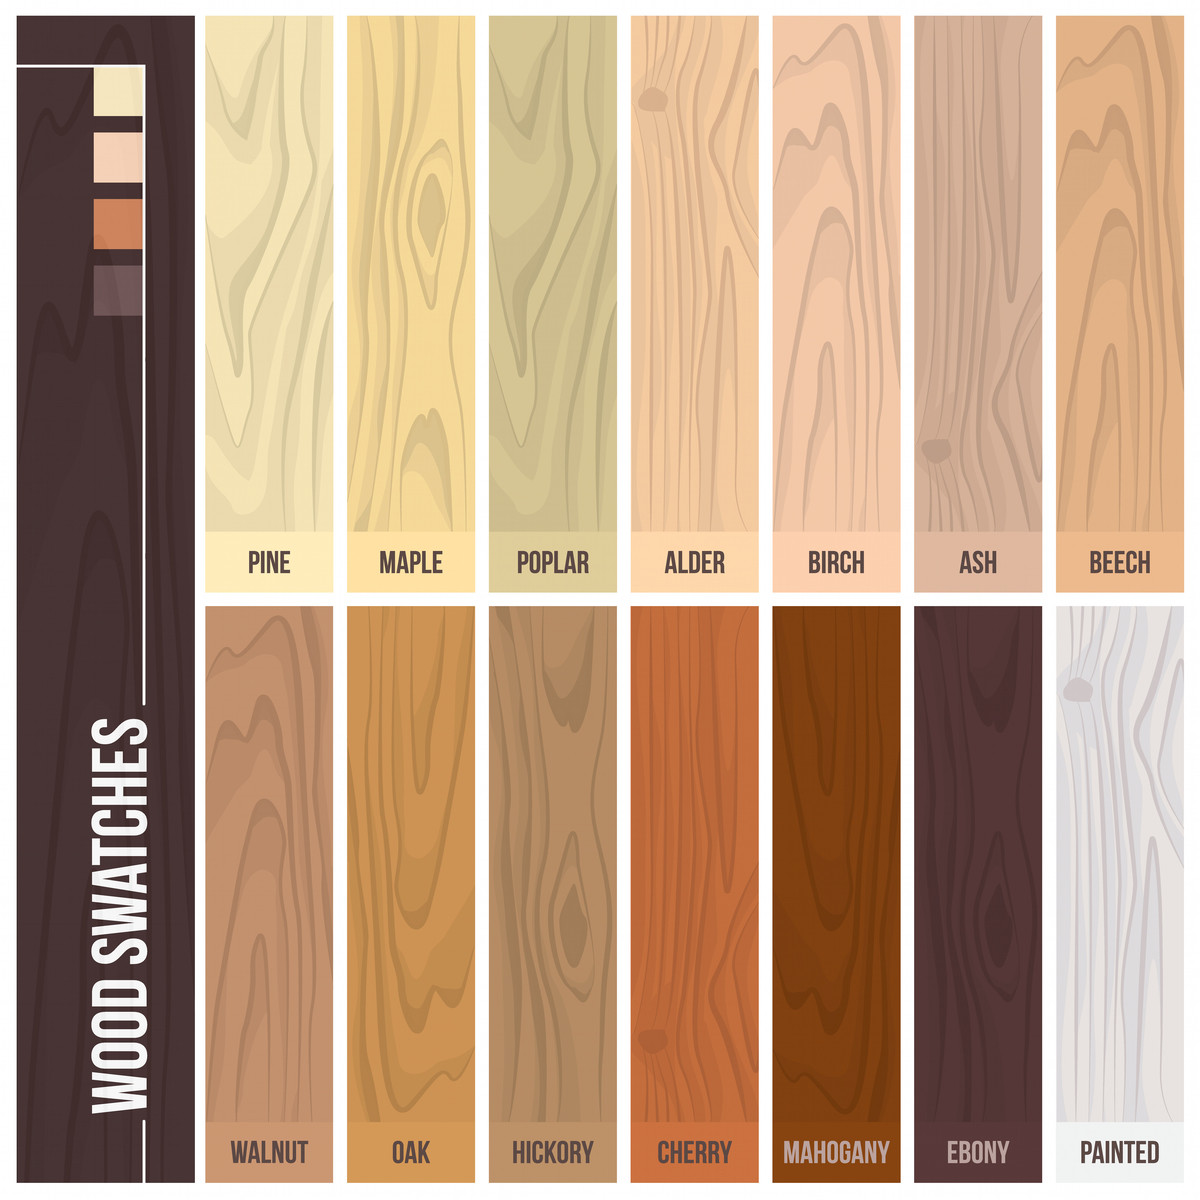 hardwood vs engineered wood flooring cost of 12 types of hardwood flooring species styles edging dimensions for types of hardwood flooring illustrated guide